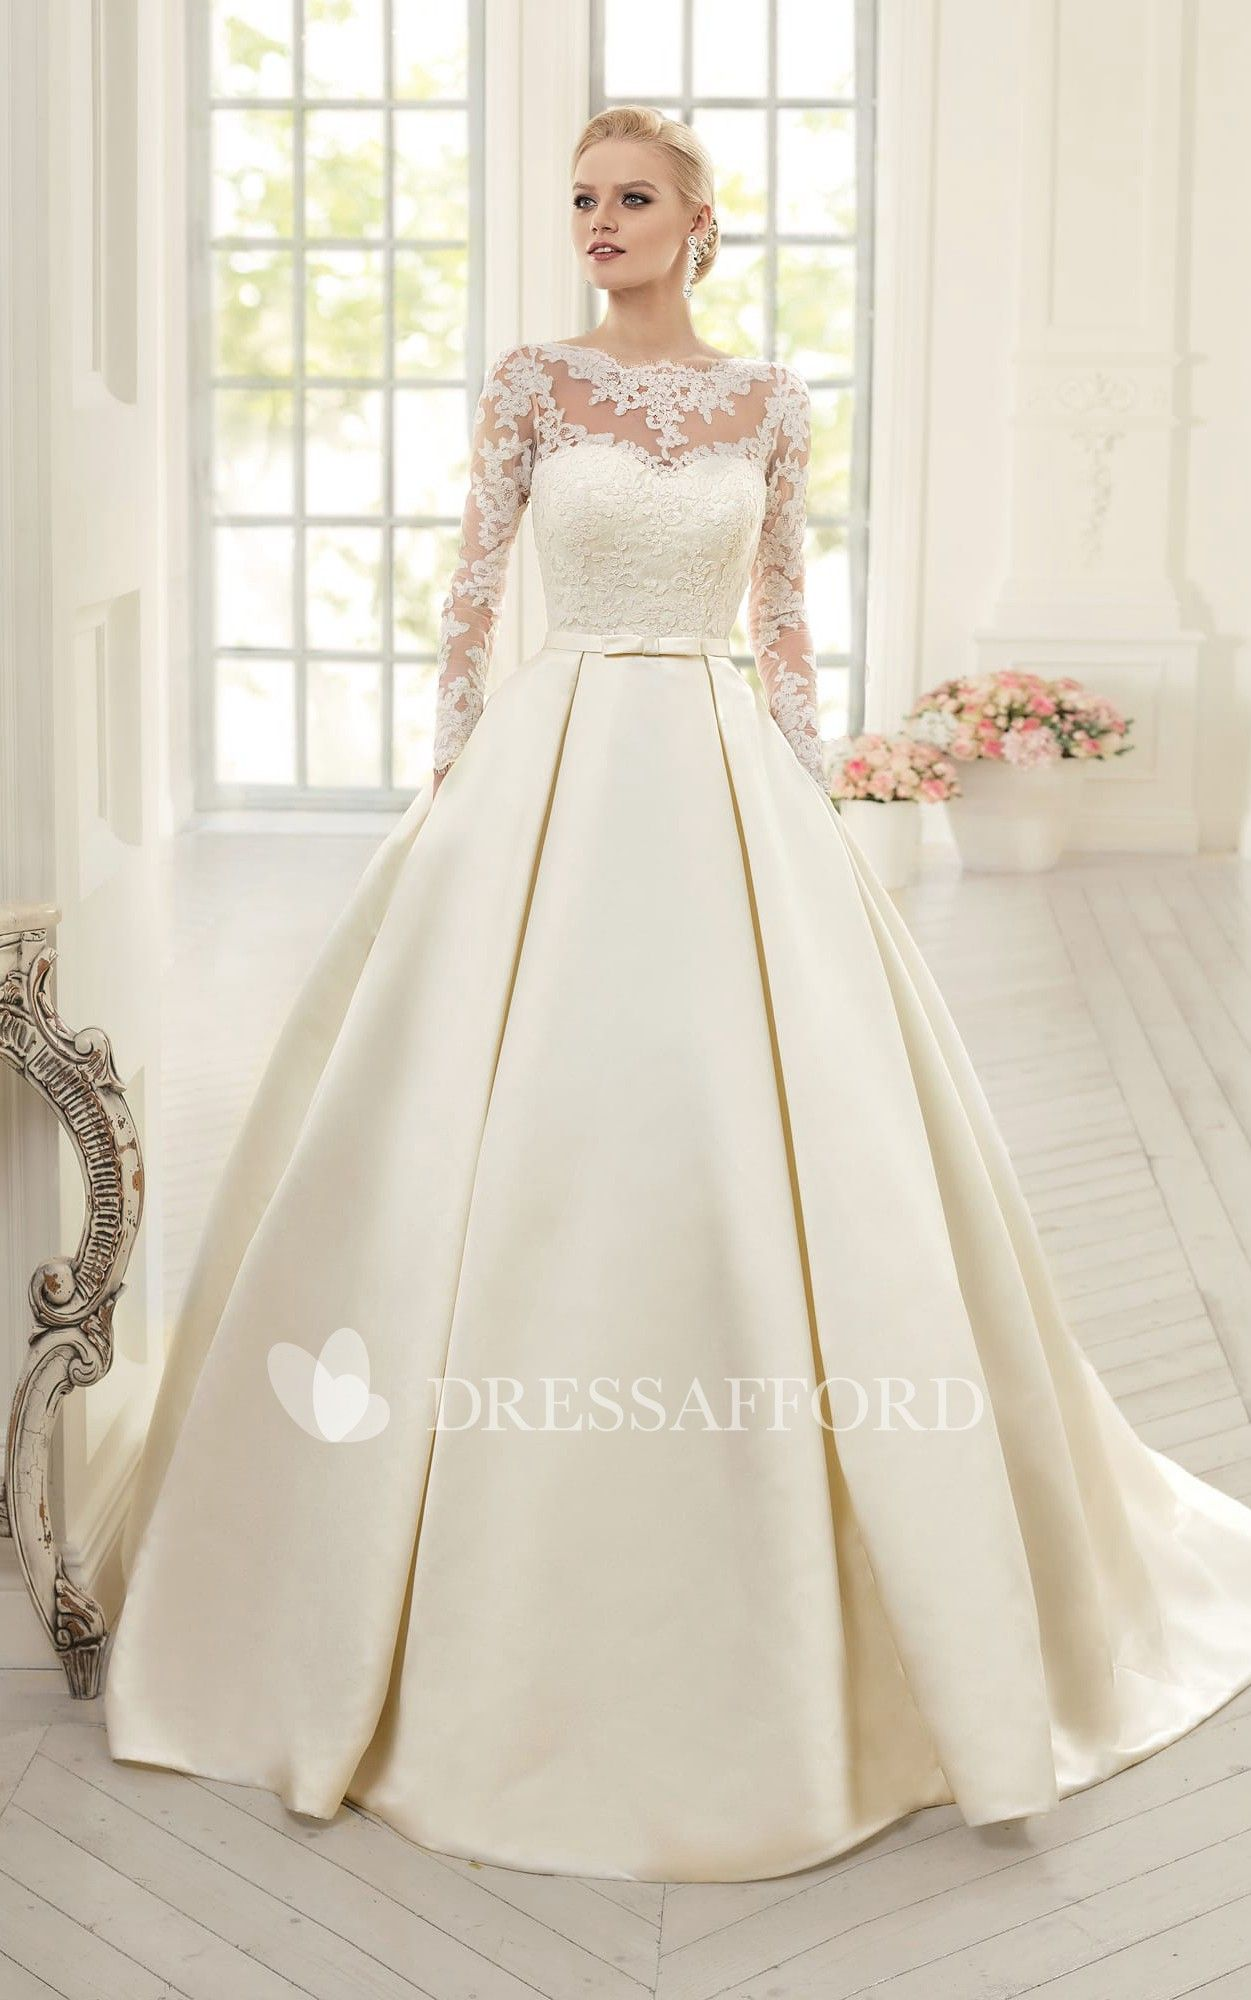 Ball Gown Floor Length Jewel Long Sleeve Corset Back Satin Dress With Appliques Dress Afford In 2020 Satin Wedding Gown Wedding Dress Sleeves Ball Gowns Wedding